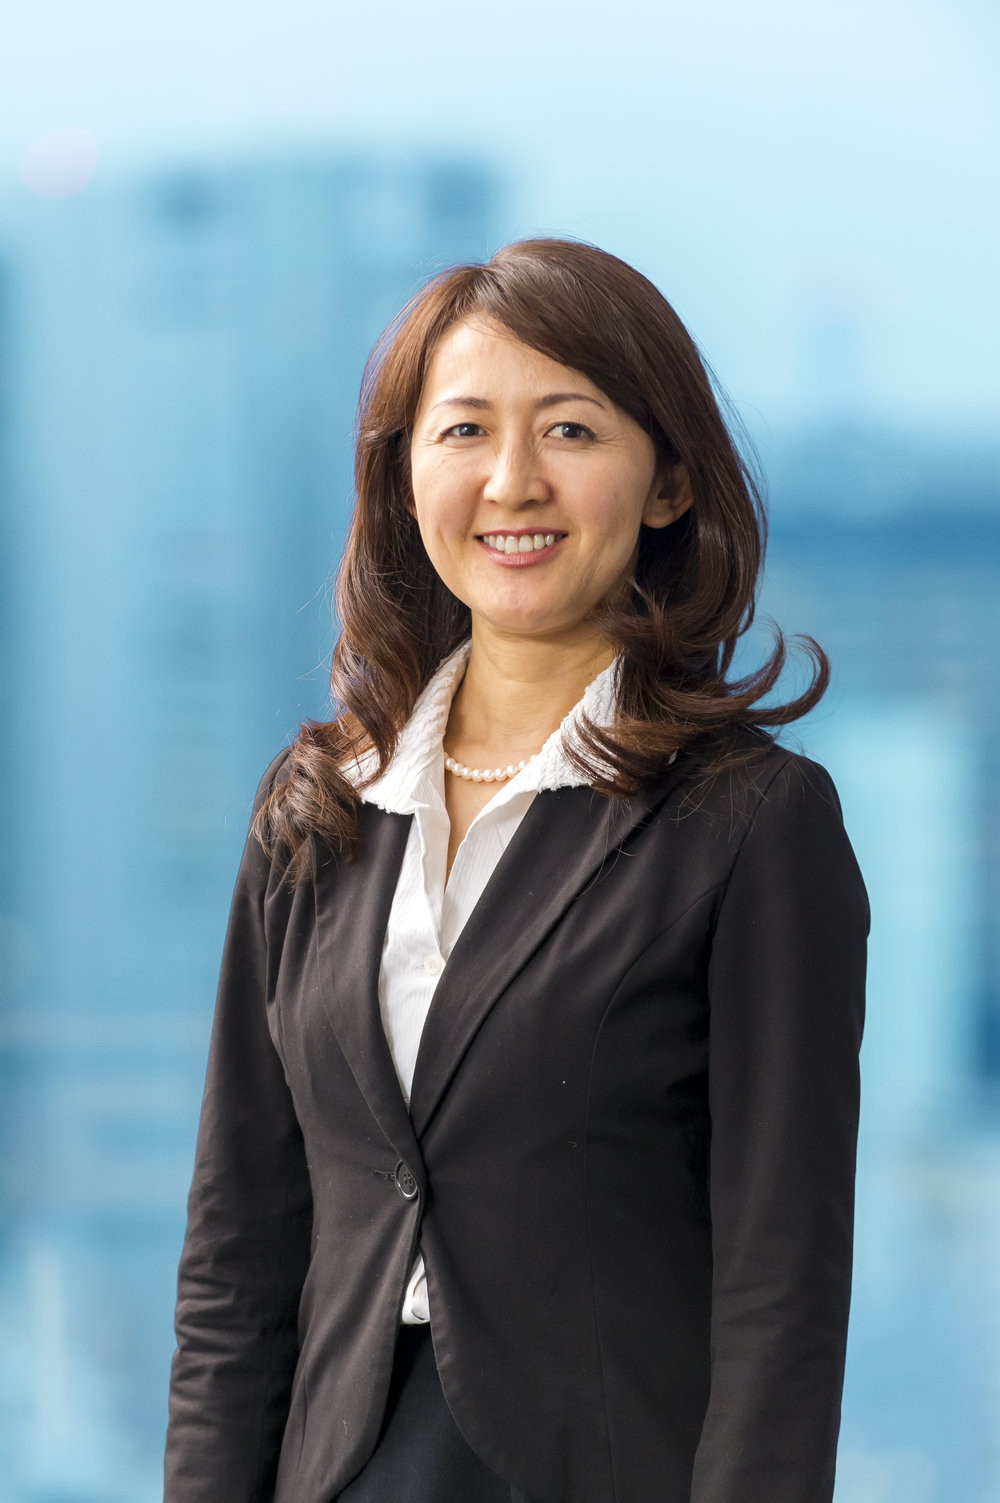 小川 恵子 / Keiko OGAWA  新日本有限責任監査法人 金融事業部 パートナー 公認会計士 EY Japan RegTech リーダー / Certified Public Accountant  Partner, Financial Services Office Division, Ernst & Young ShinNihon LLC; EY Japan Regtech Leader